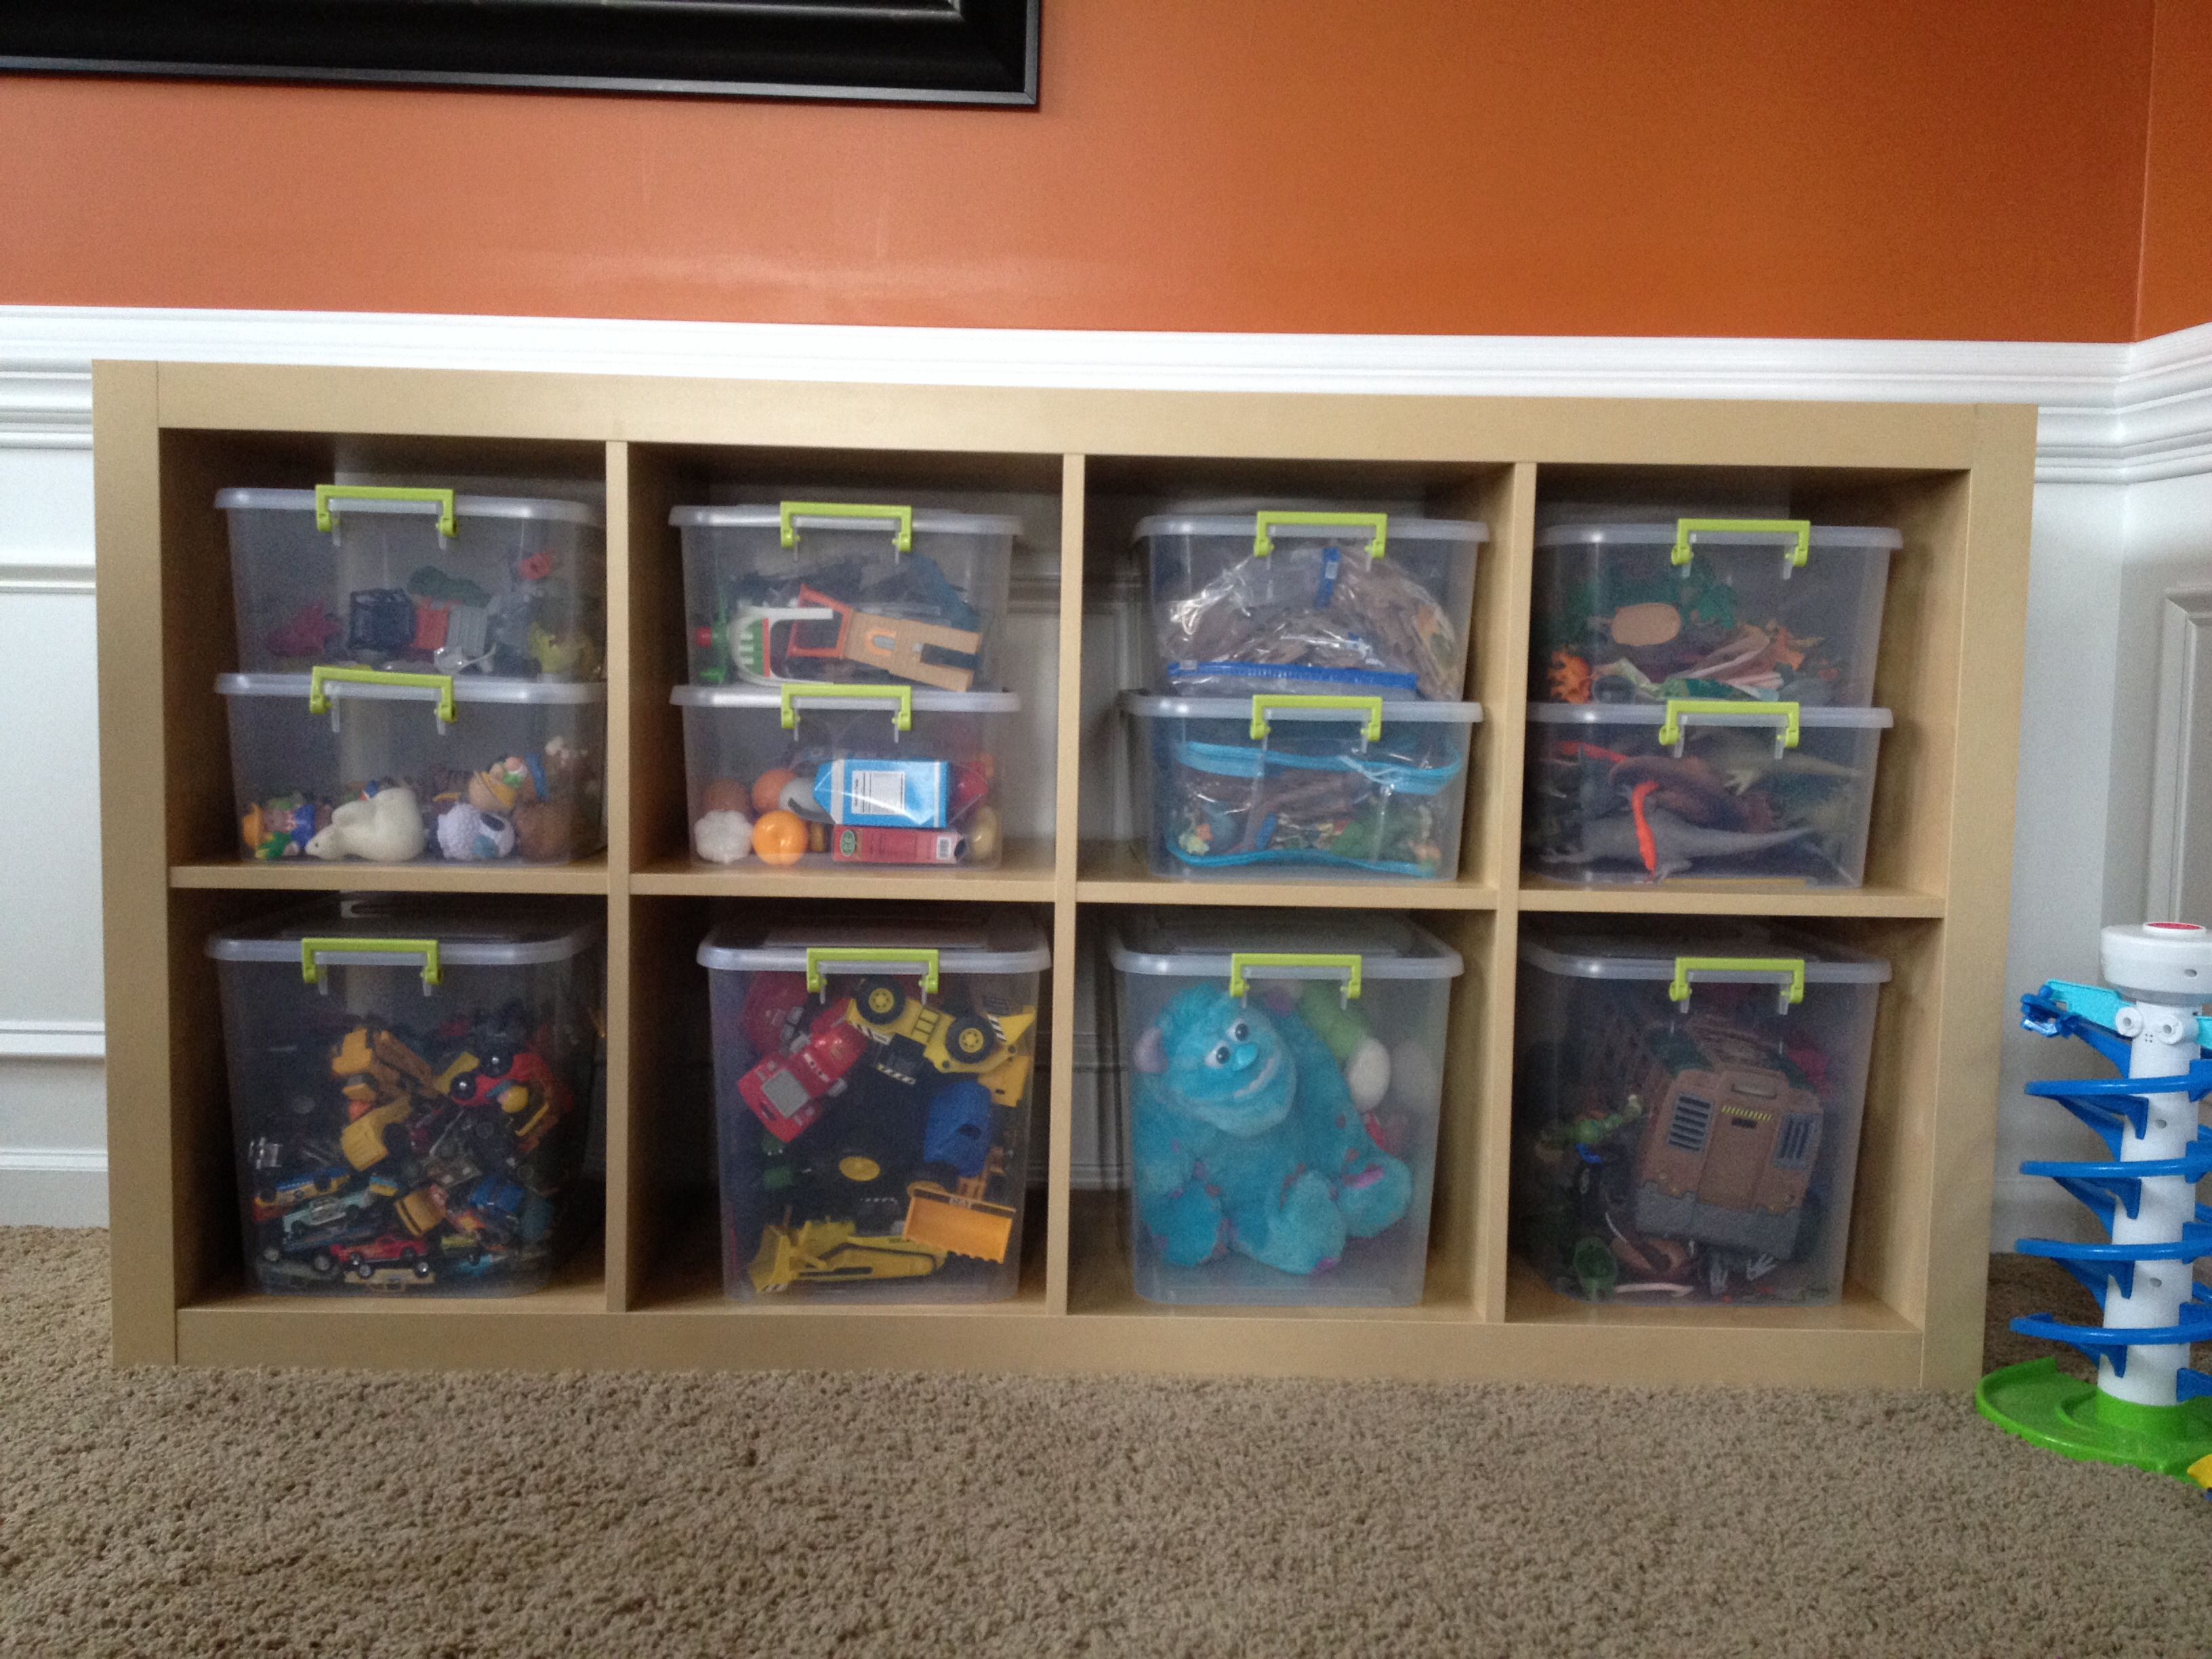 Playroom Toy Organization Expedit Book Case From Ikea